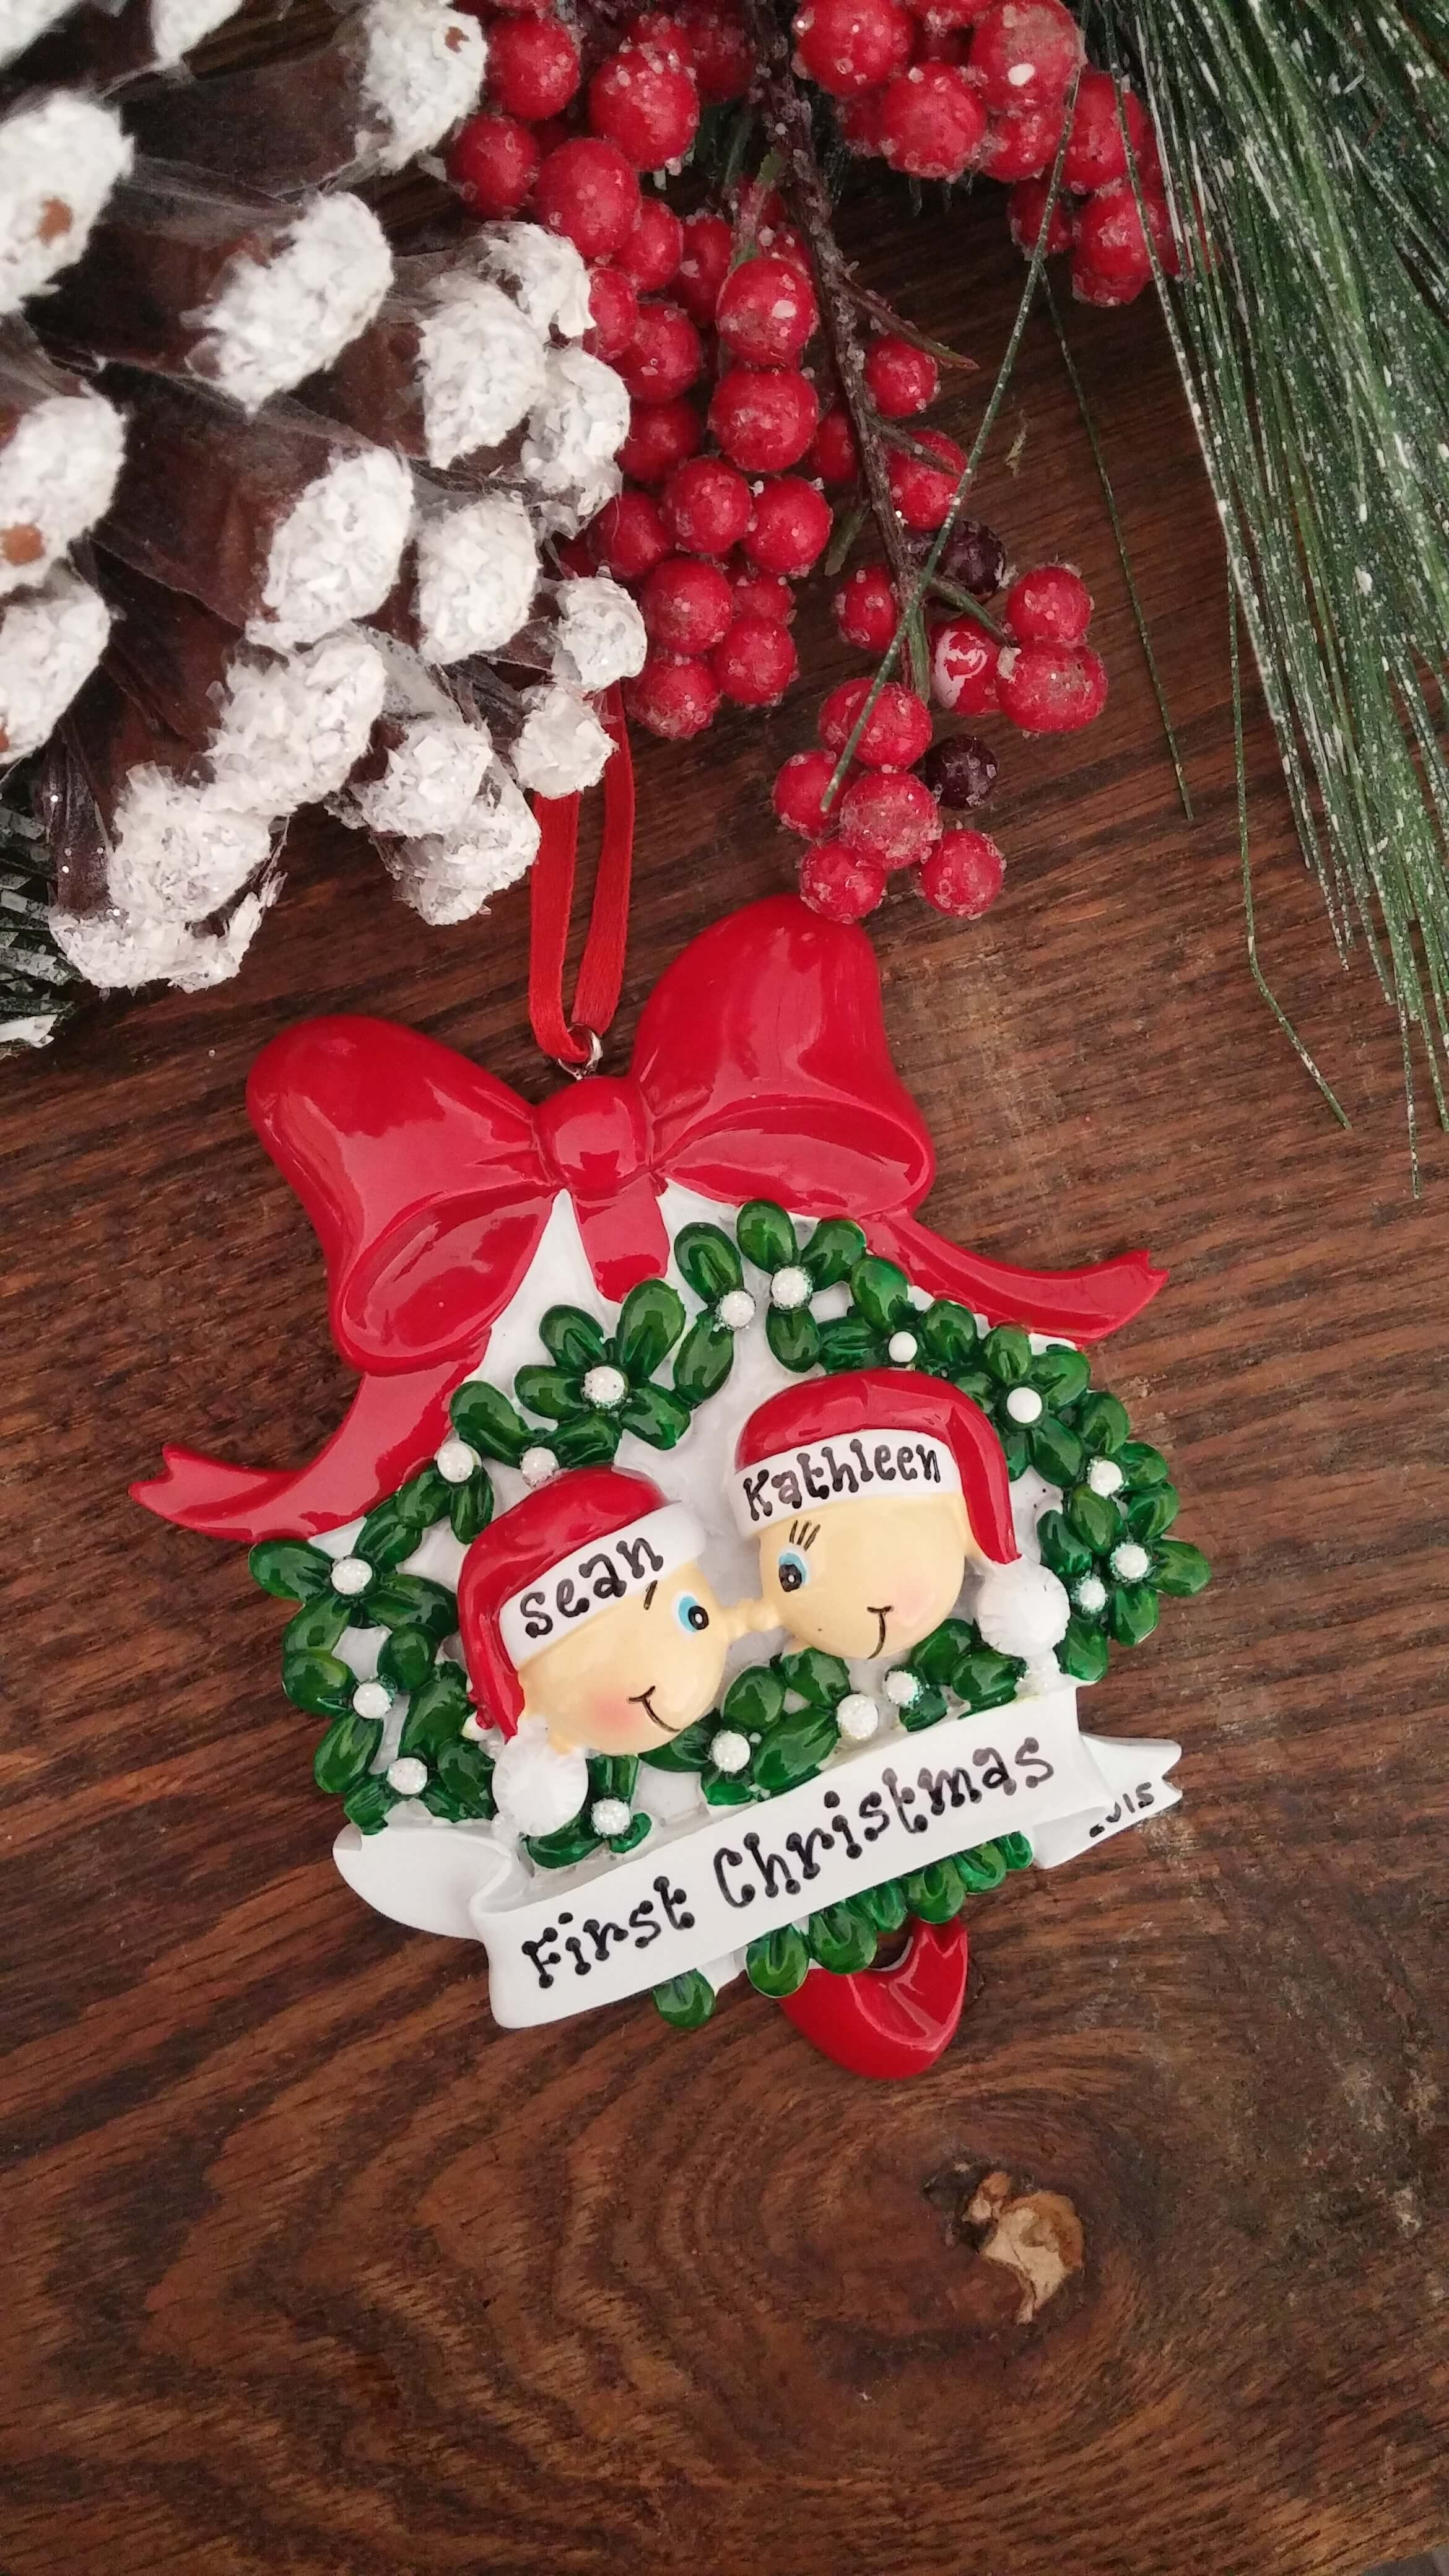 Couples christmas ornaments - Couples Christmas Ornaments